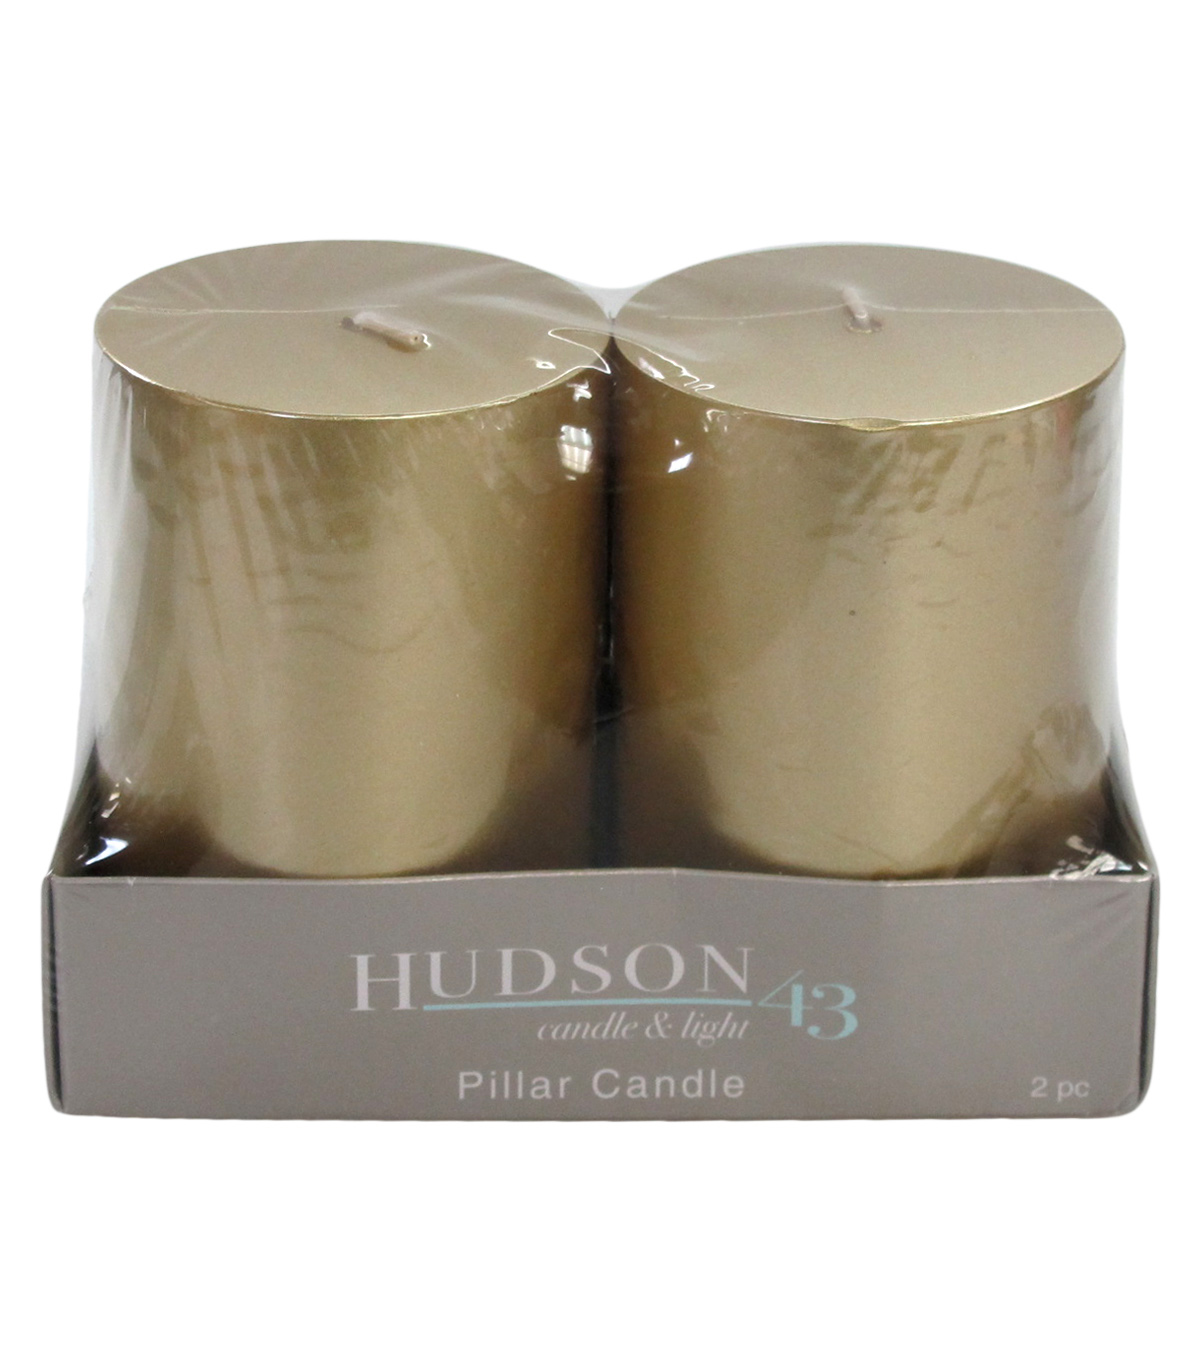 Hudson 43™ Candle & Light Collection 2  Pack 3X4 Gold Pillar